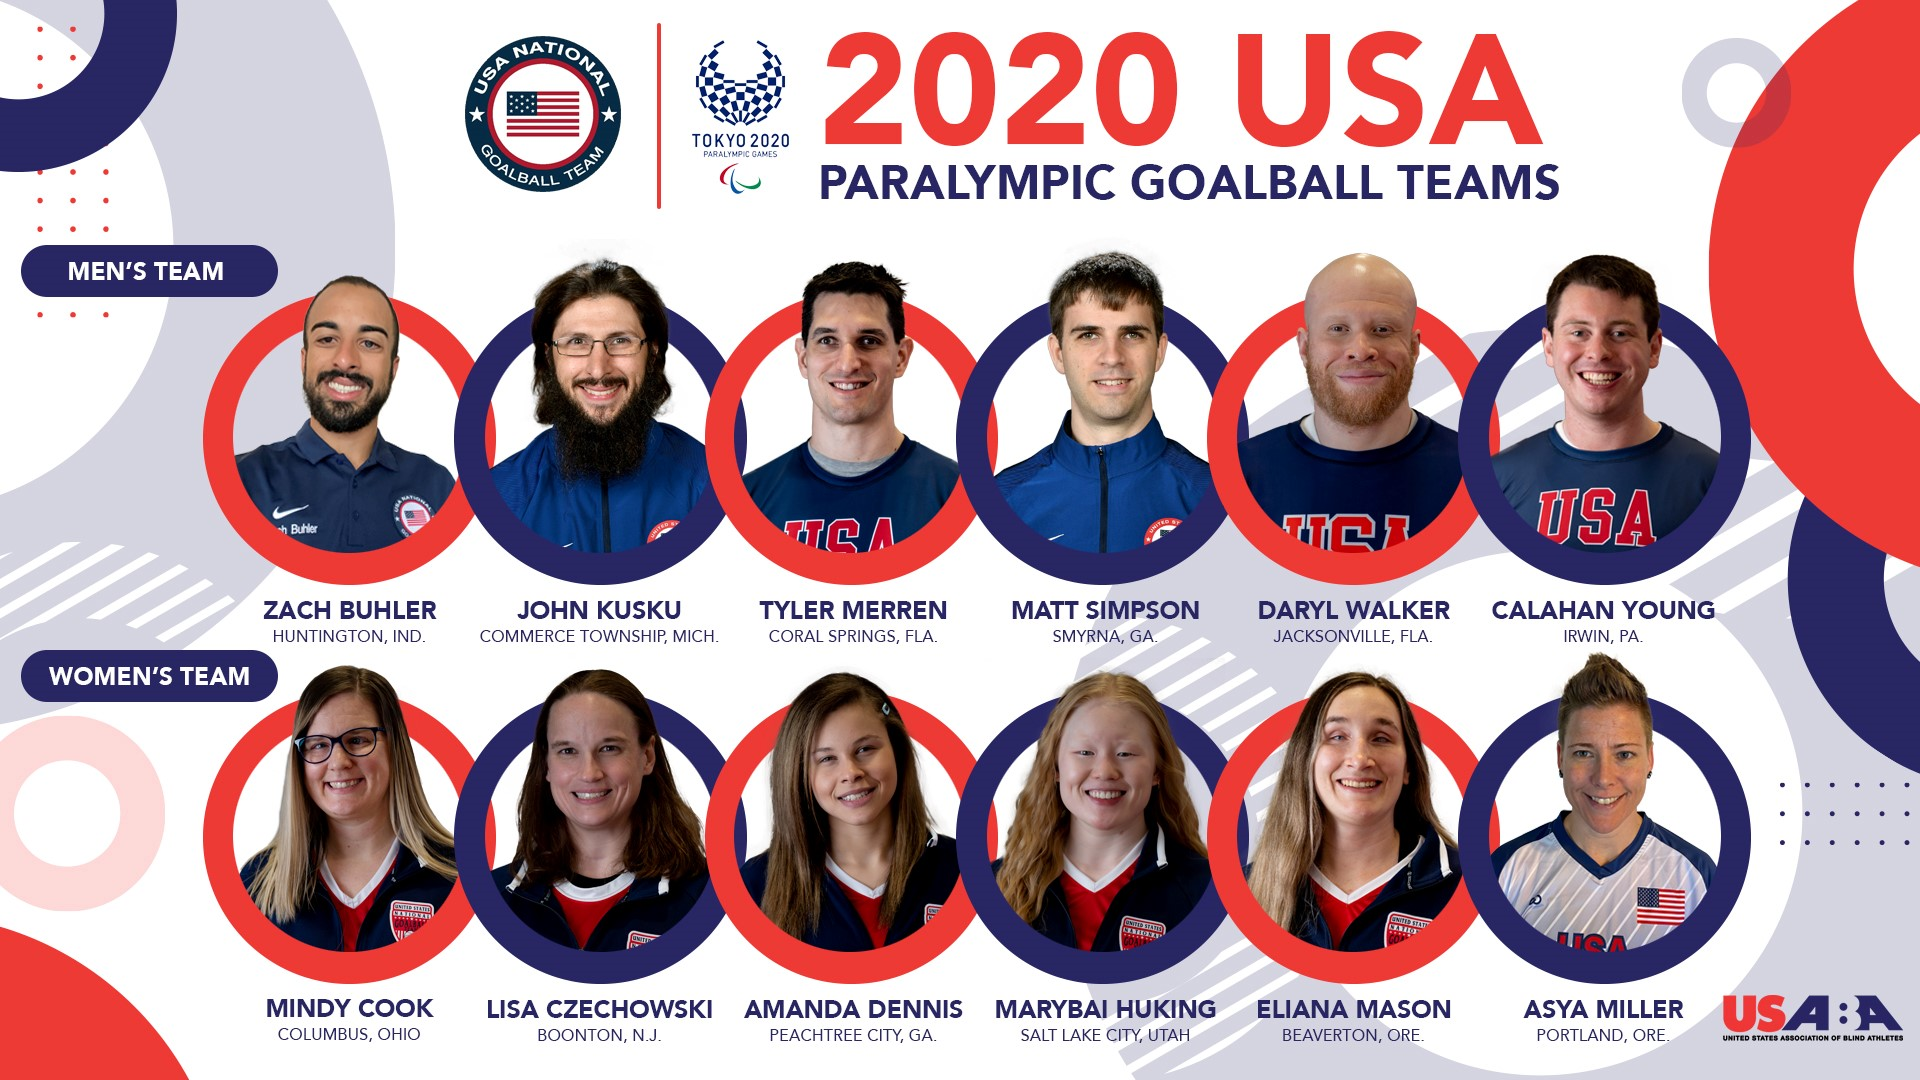 Graphic with headshot photos of the 12 members of the USA Paralympic Goalball Teams